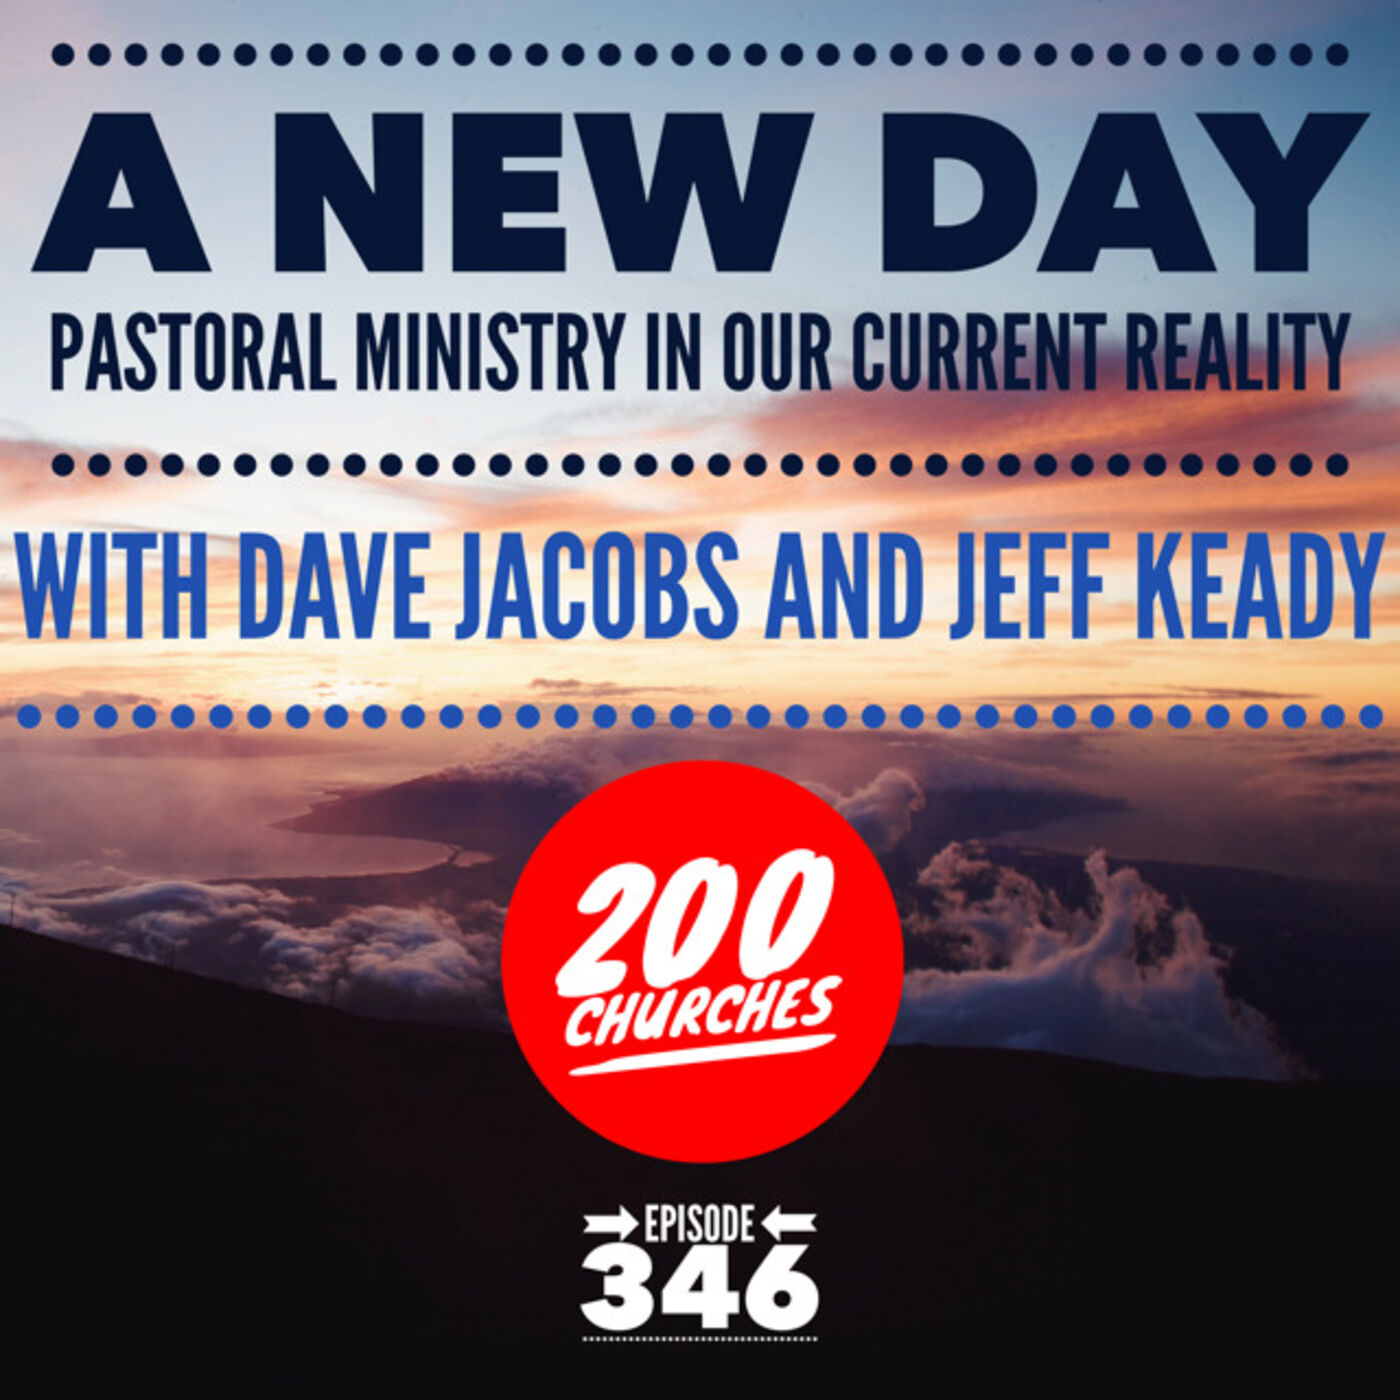 Episode 346 - A New Day - Pastoral Ministry In Our Current Reality with Dave Jacobs and Jeff Keady